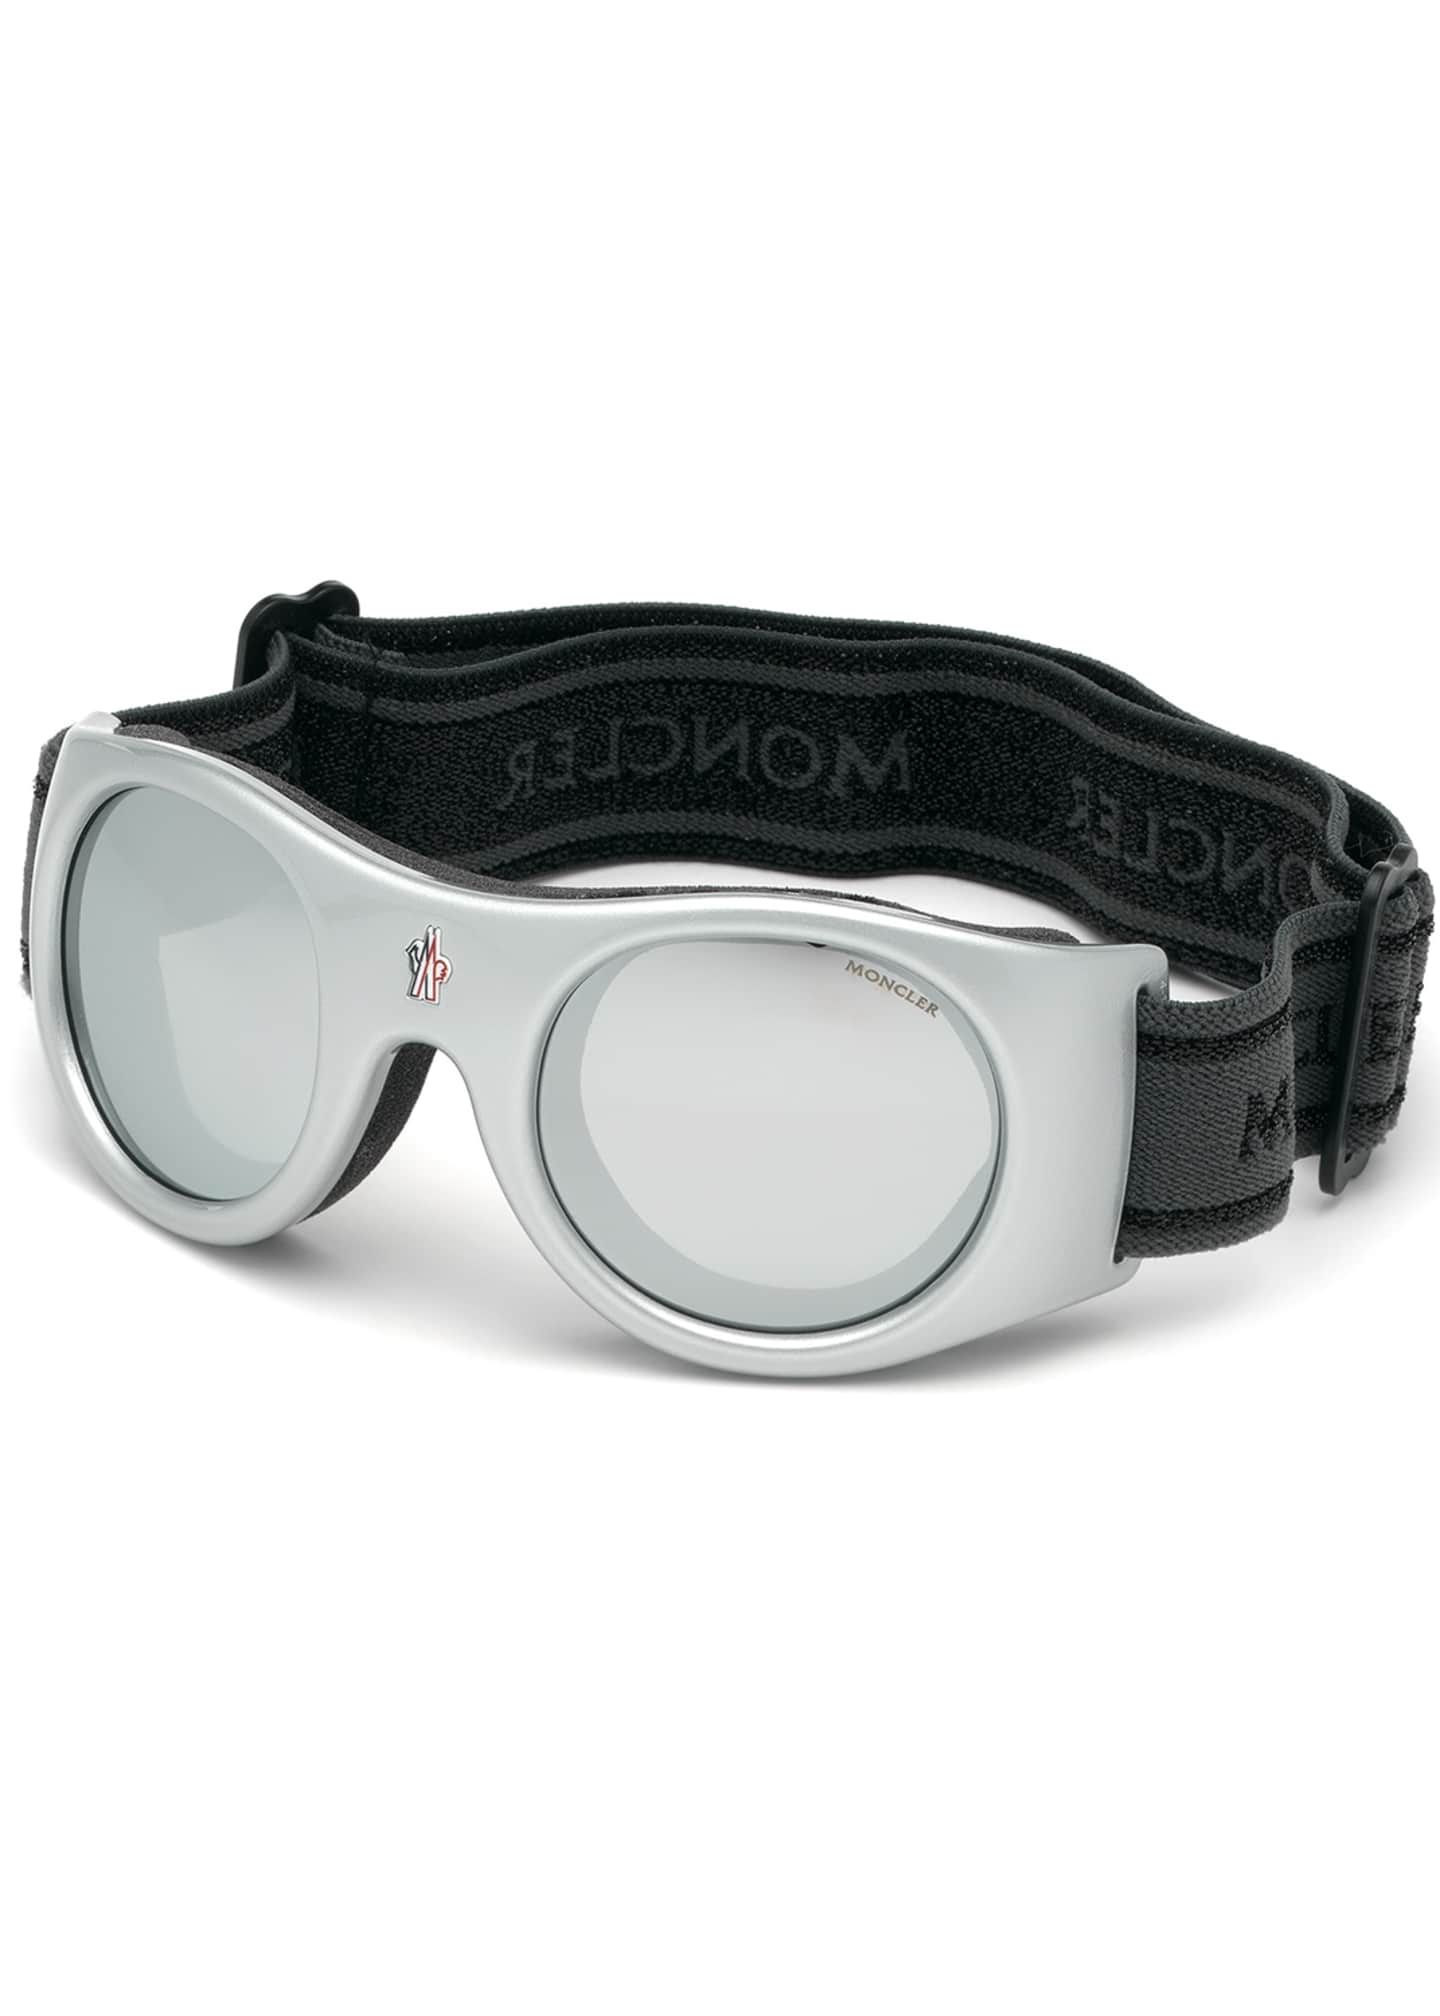 Image 1 of 1: Shield Sunglasses w/ Head Strap